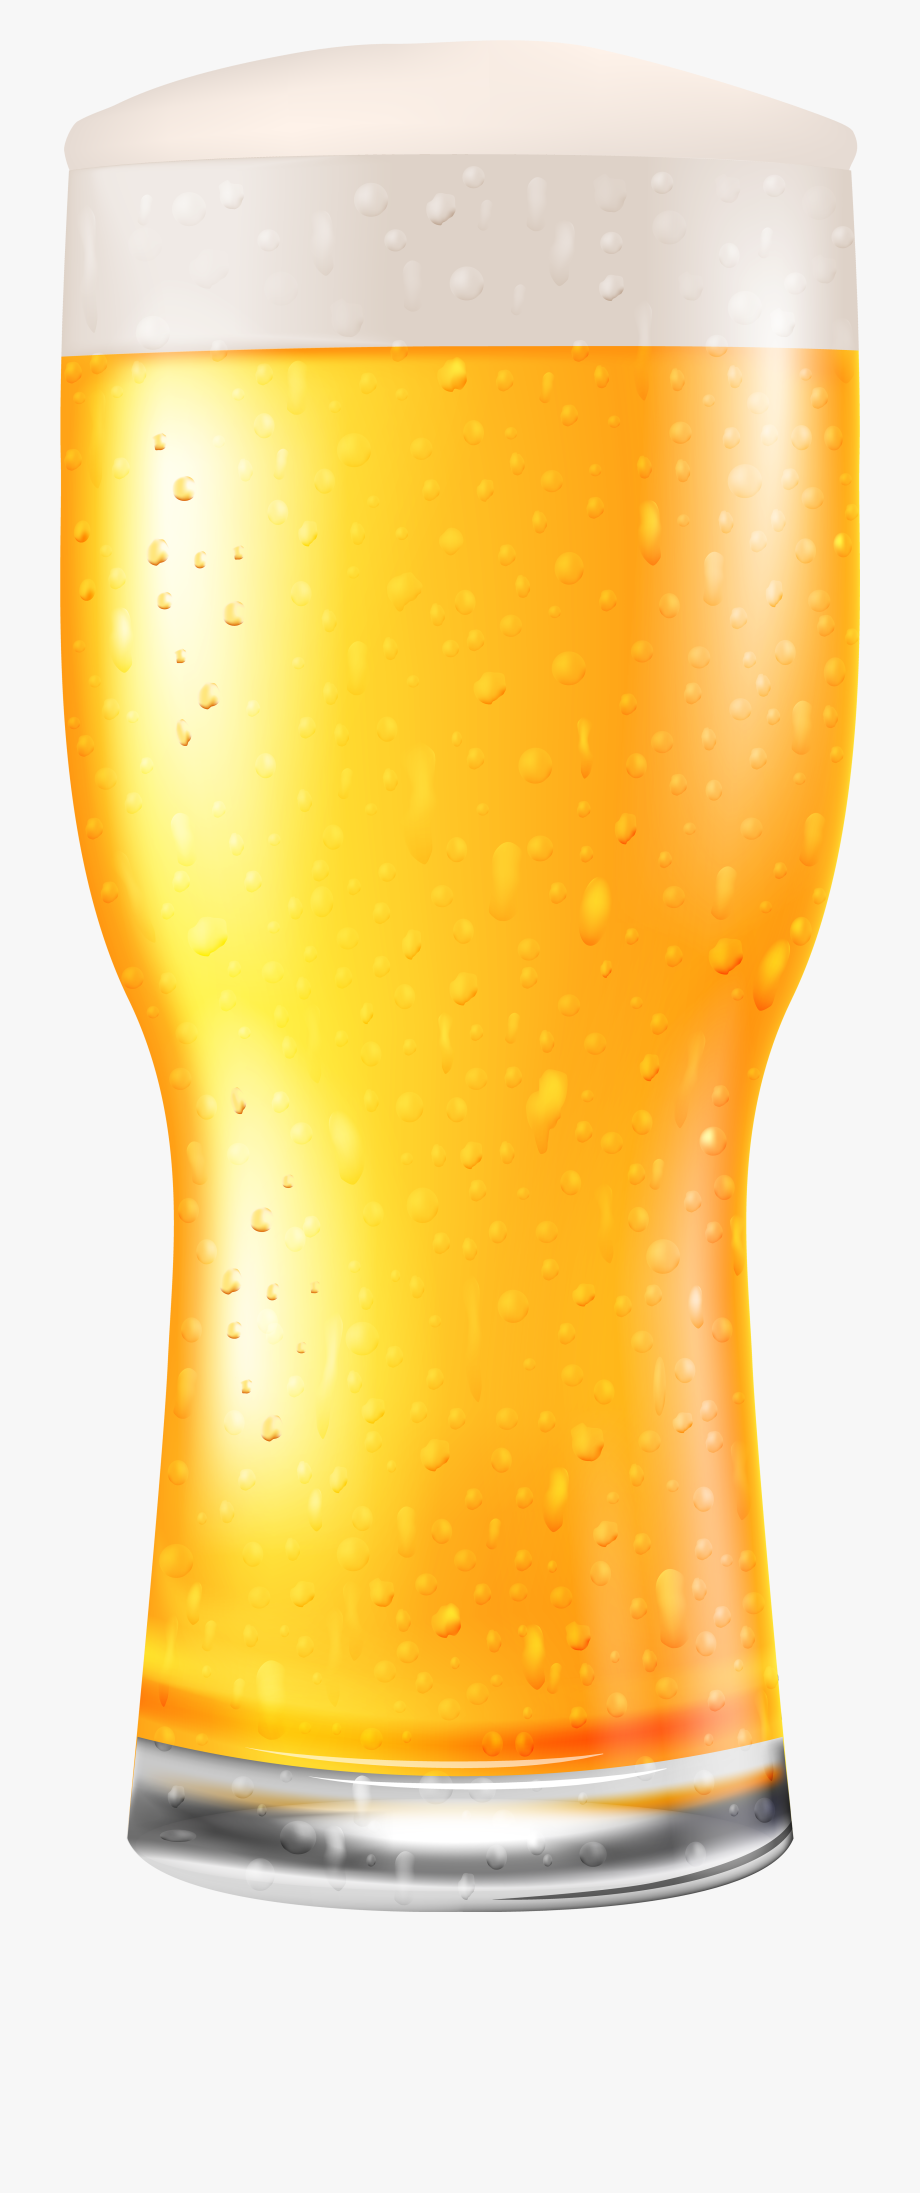 With Beer Png Clip.